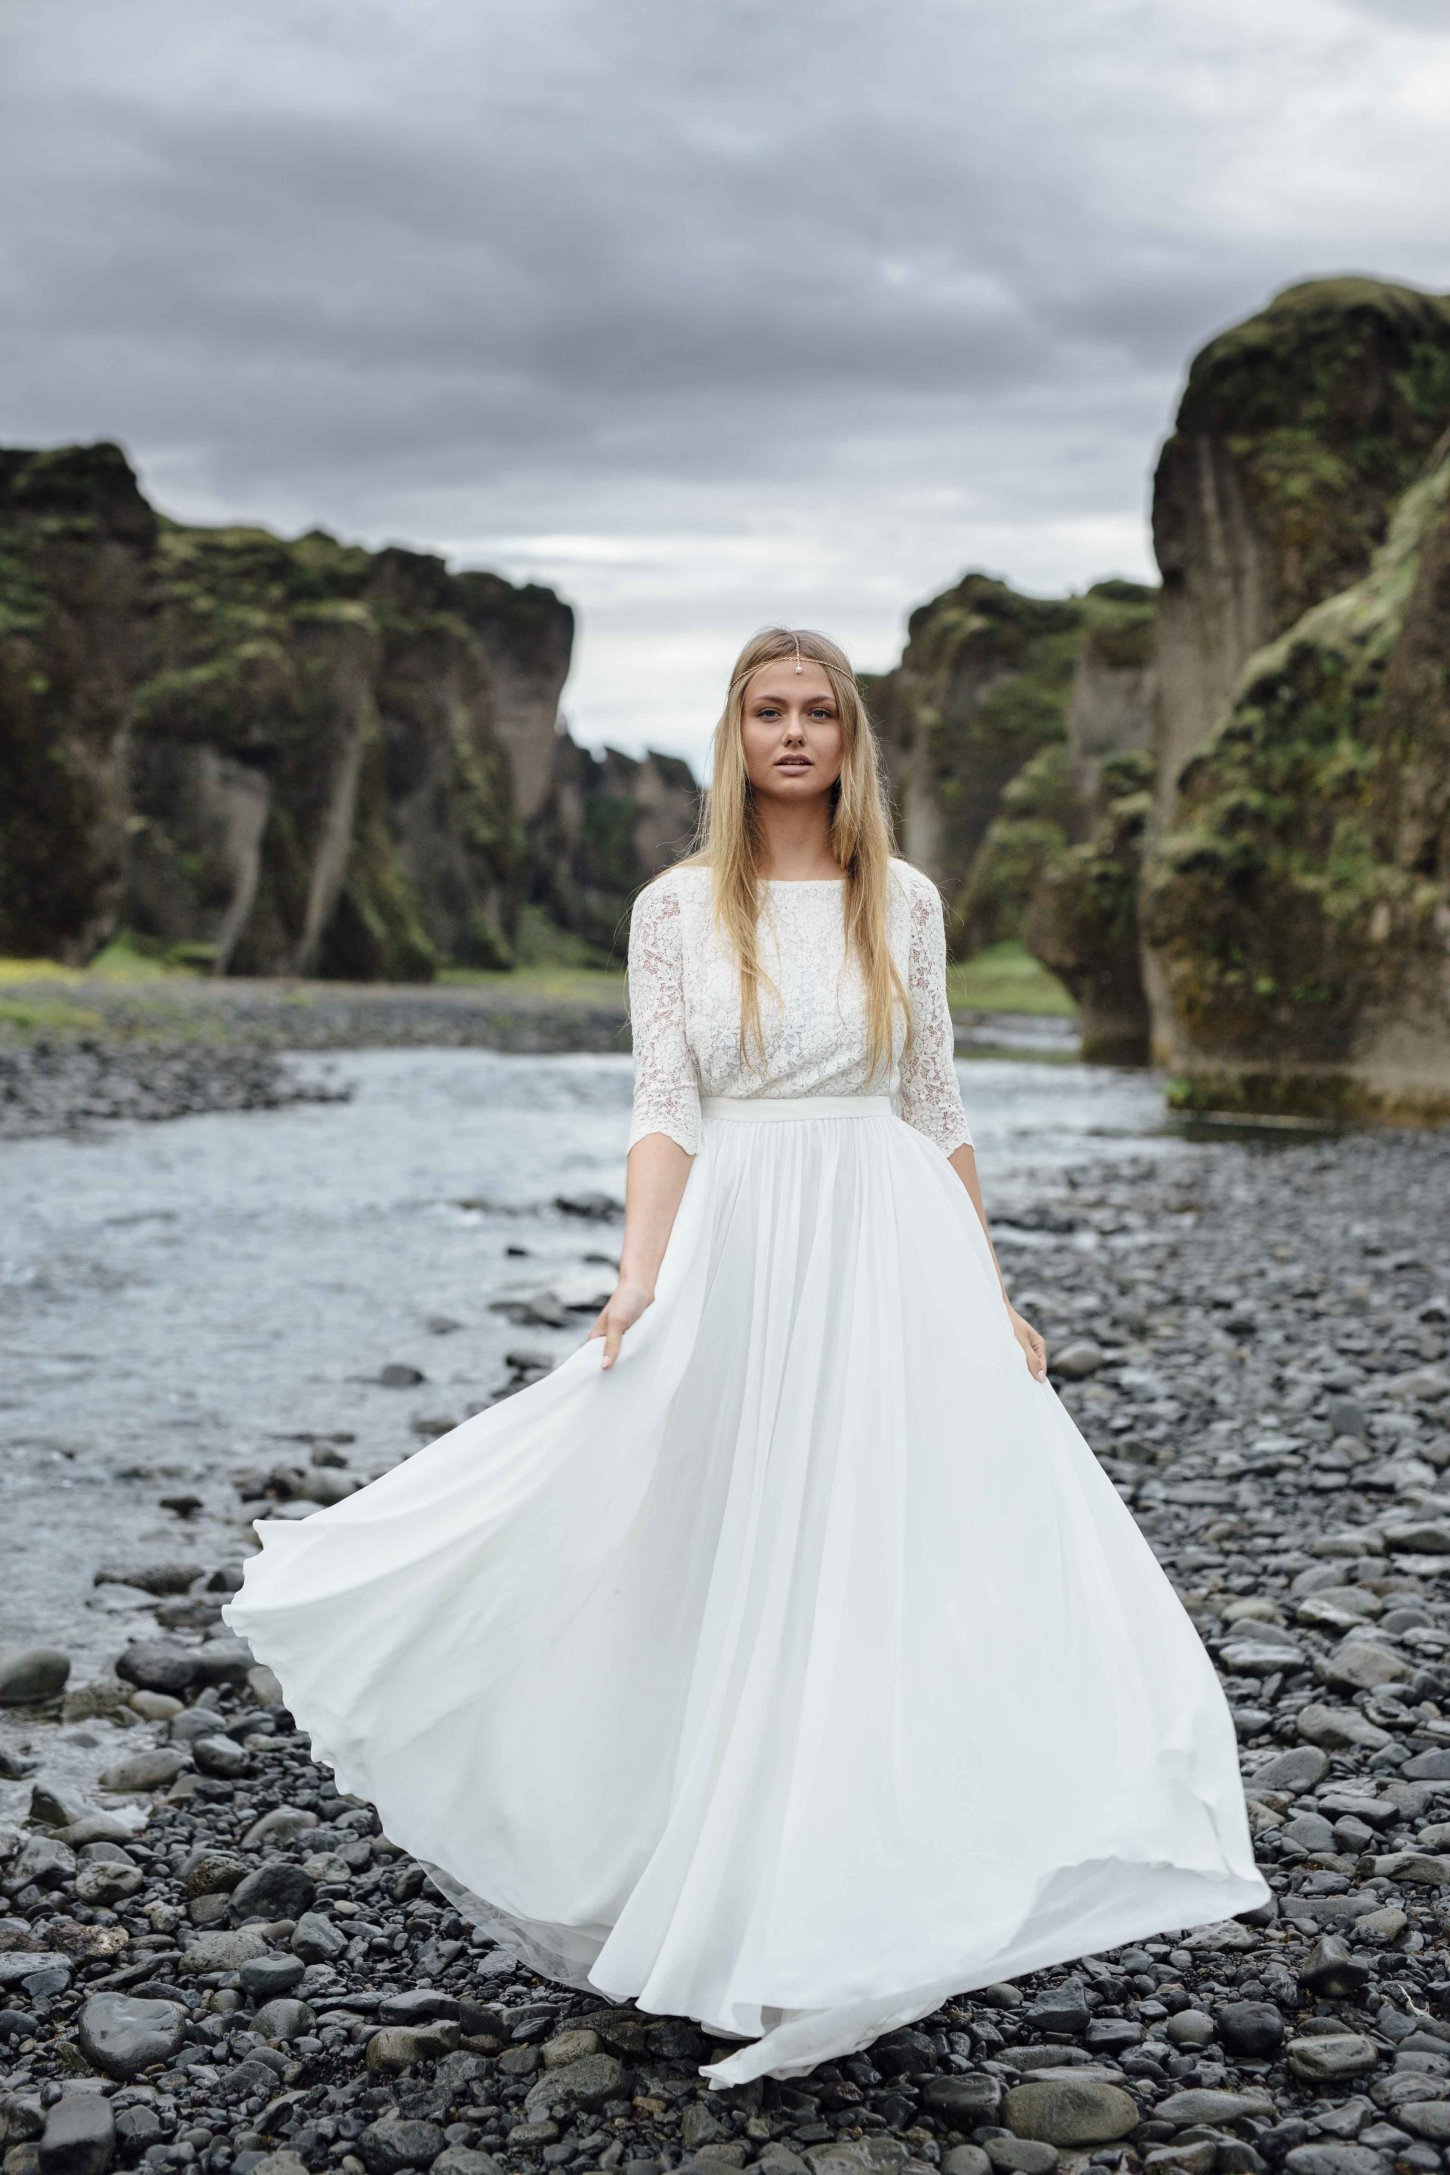 Off-white high-neck wedding dress with lace sleeve | Cathy Telle